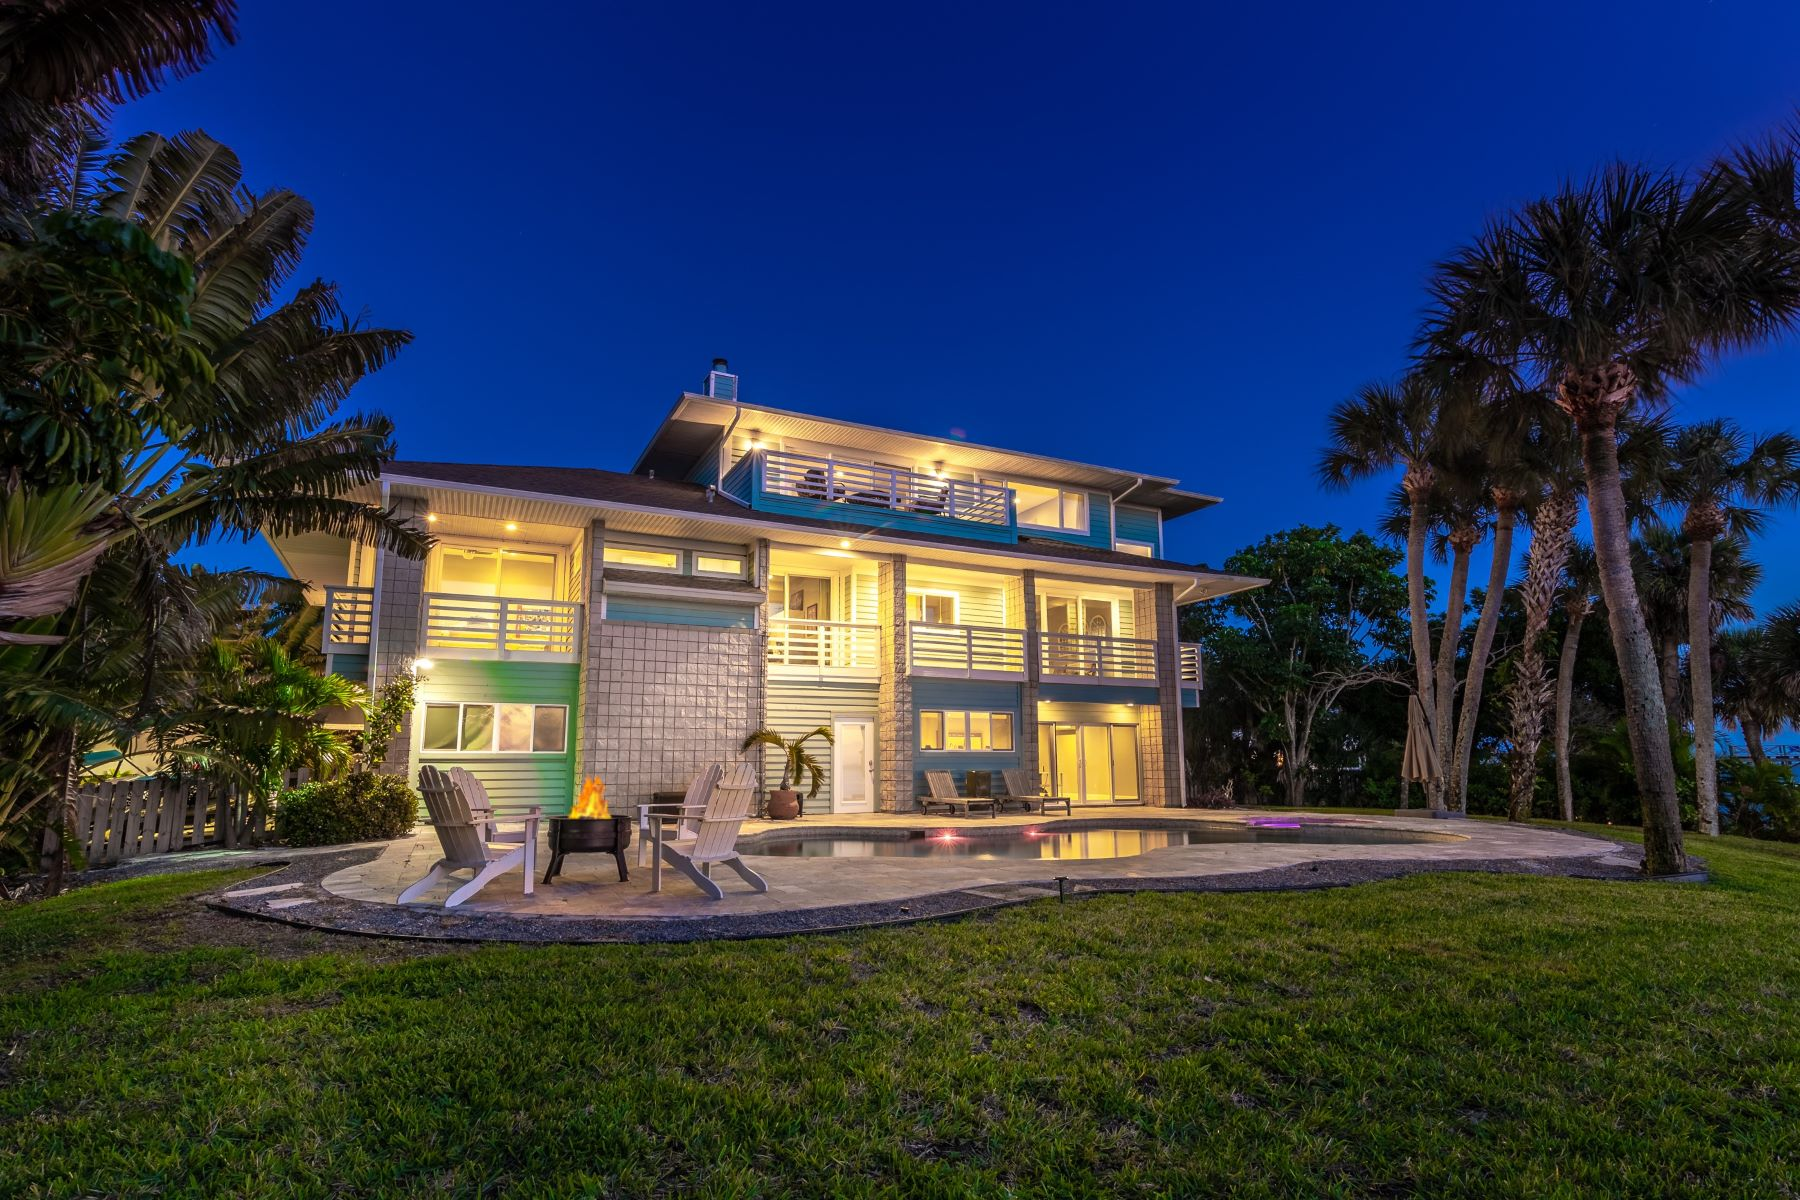 Property for Sale at 400 Richards Road Melbourne Beach, Florida 32951 United States